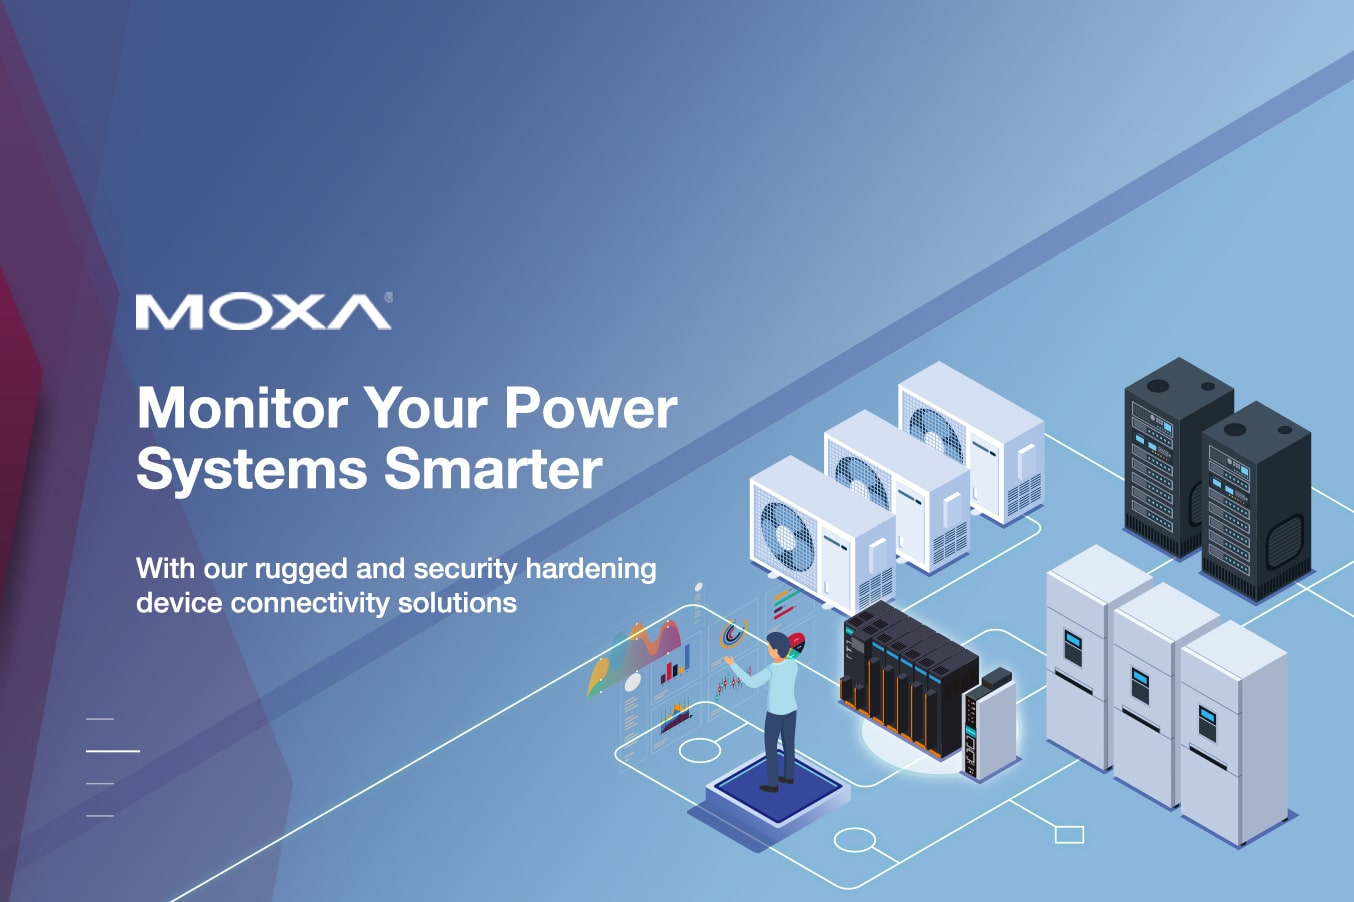 Rockford-Communication-Solutions-Moxa-Power-Monitoring-Connectivity-Solutions-Campaign